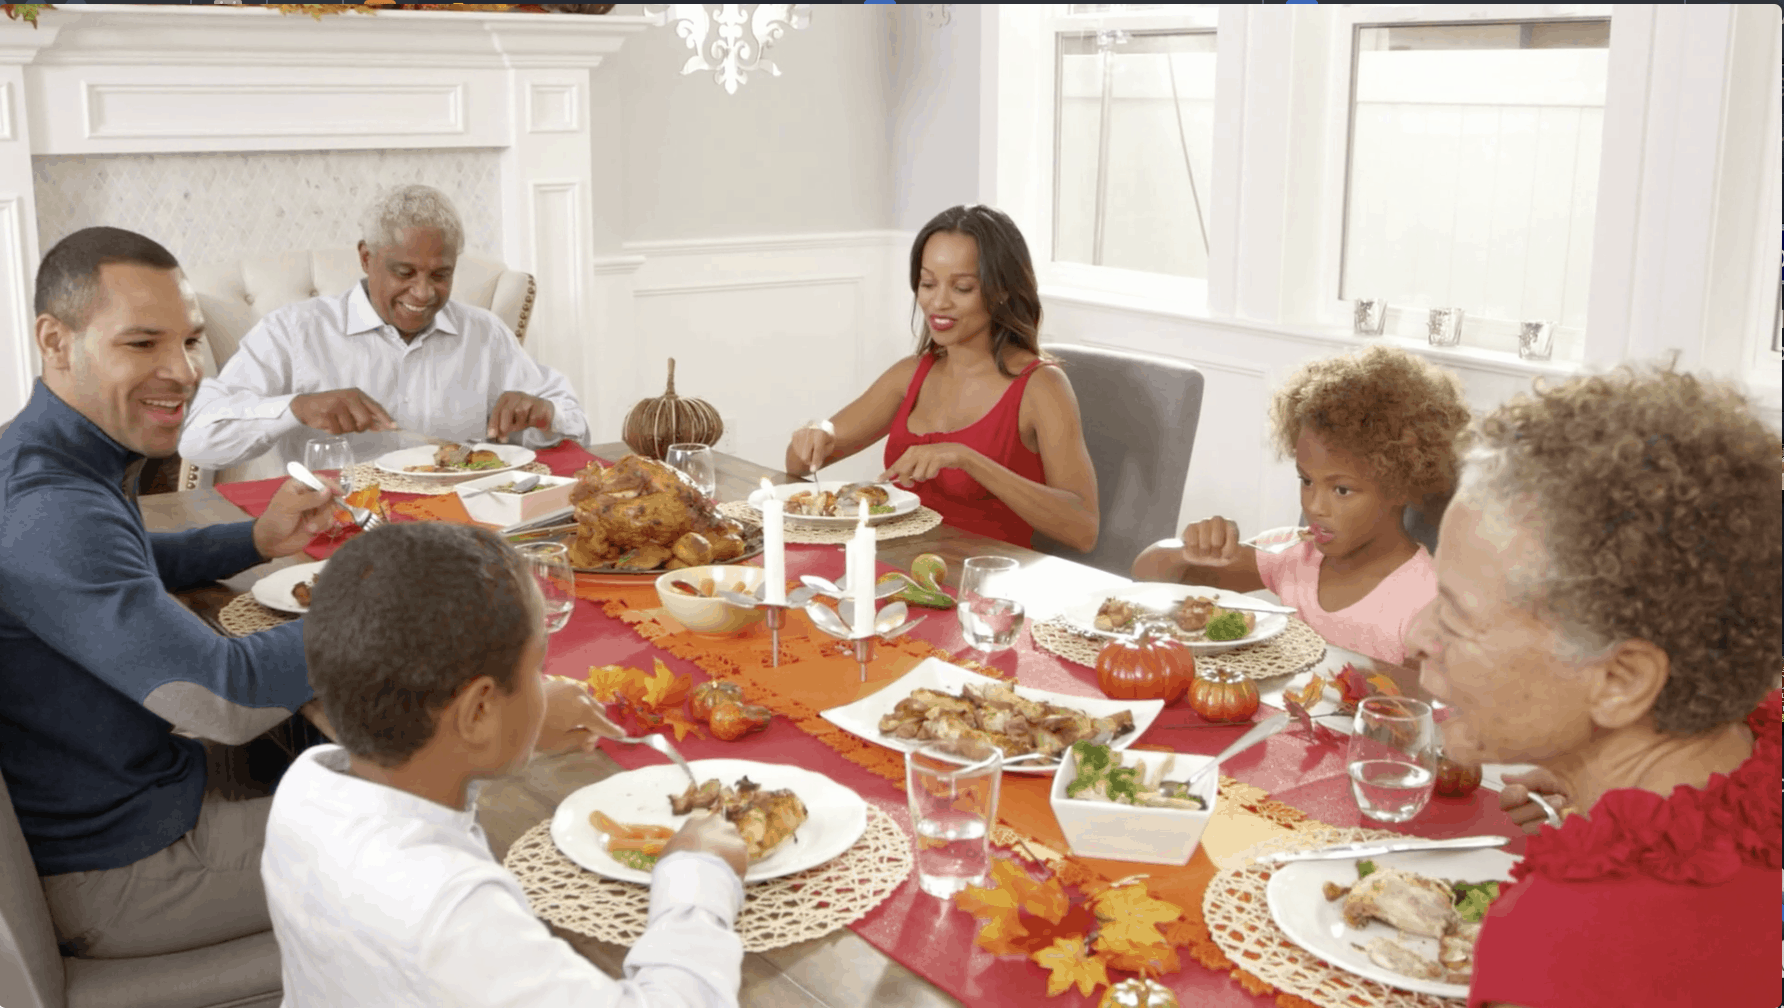 How Holiday Stress and Unhealthy Eating Can Cause Ulcers, IBS, IBD Flares and More